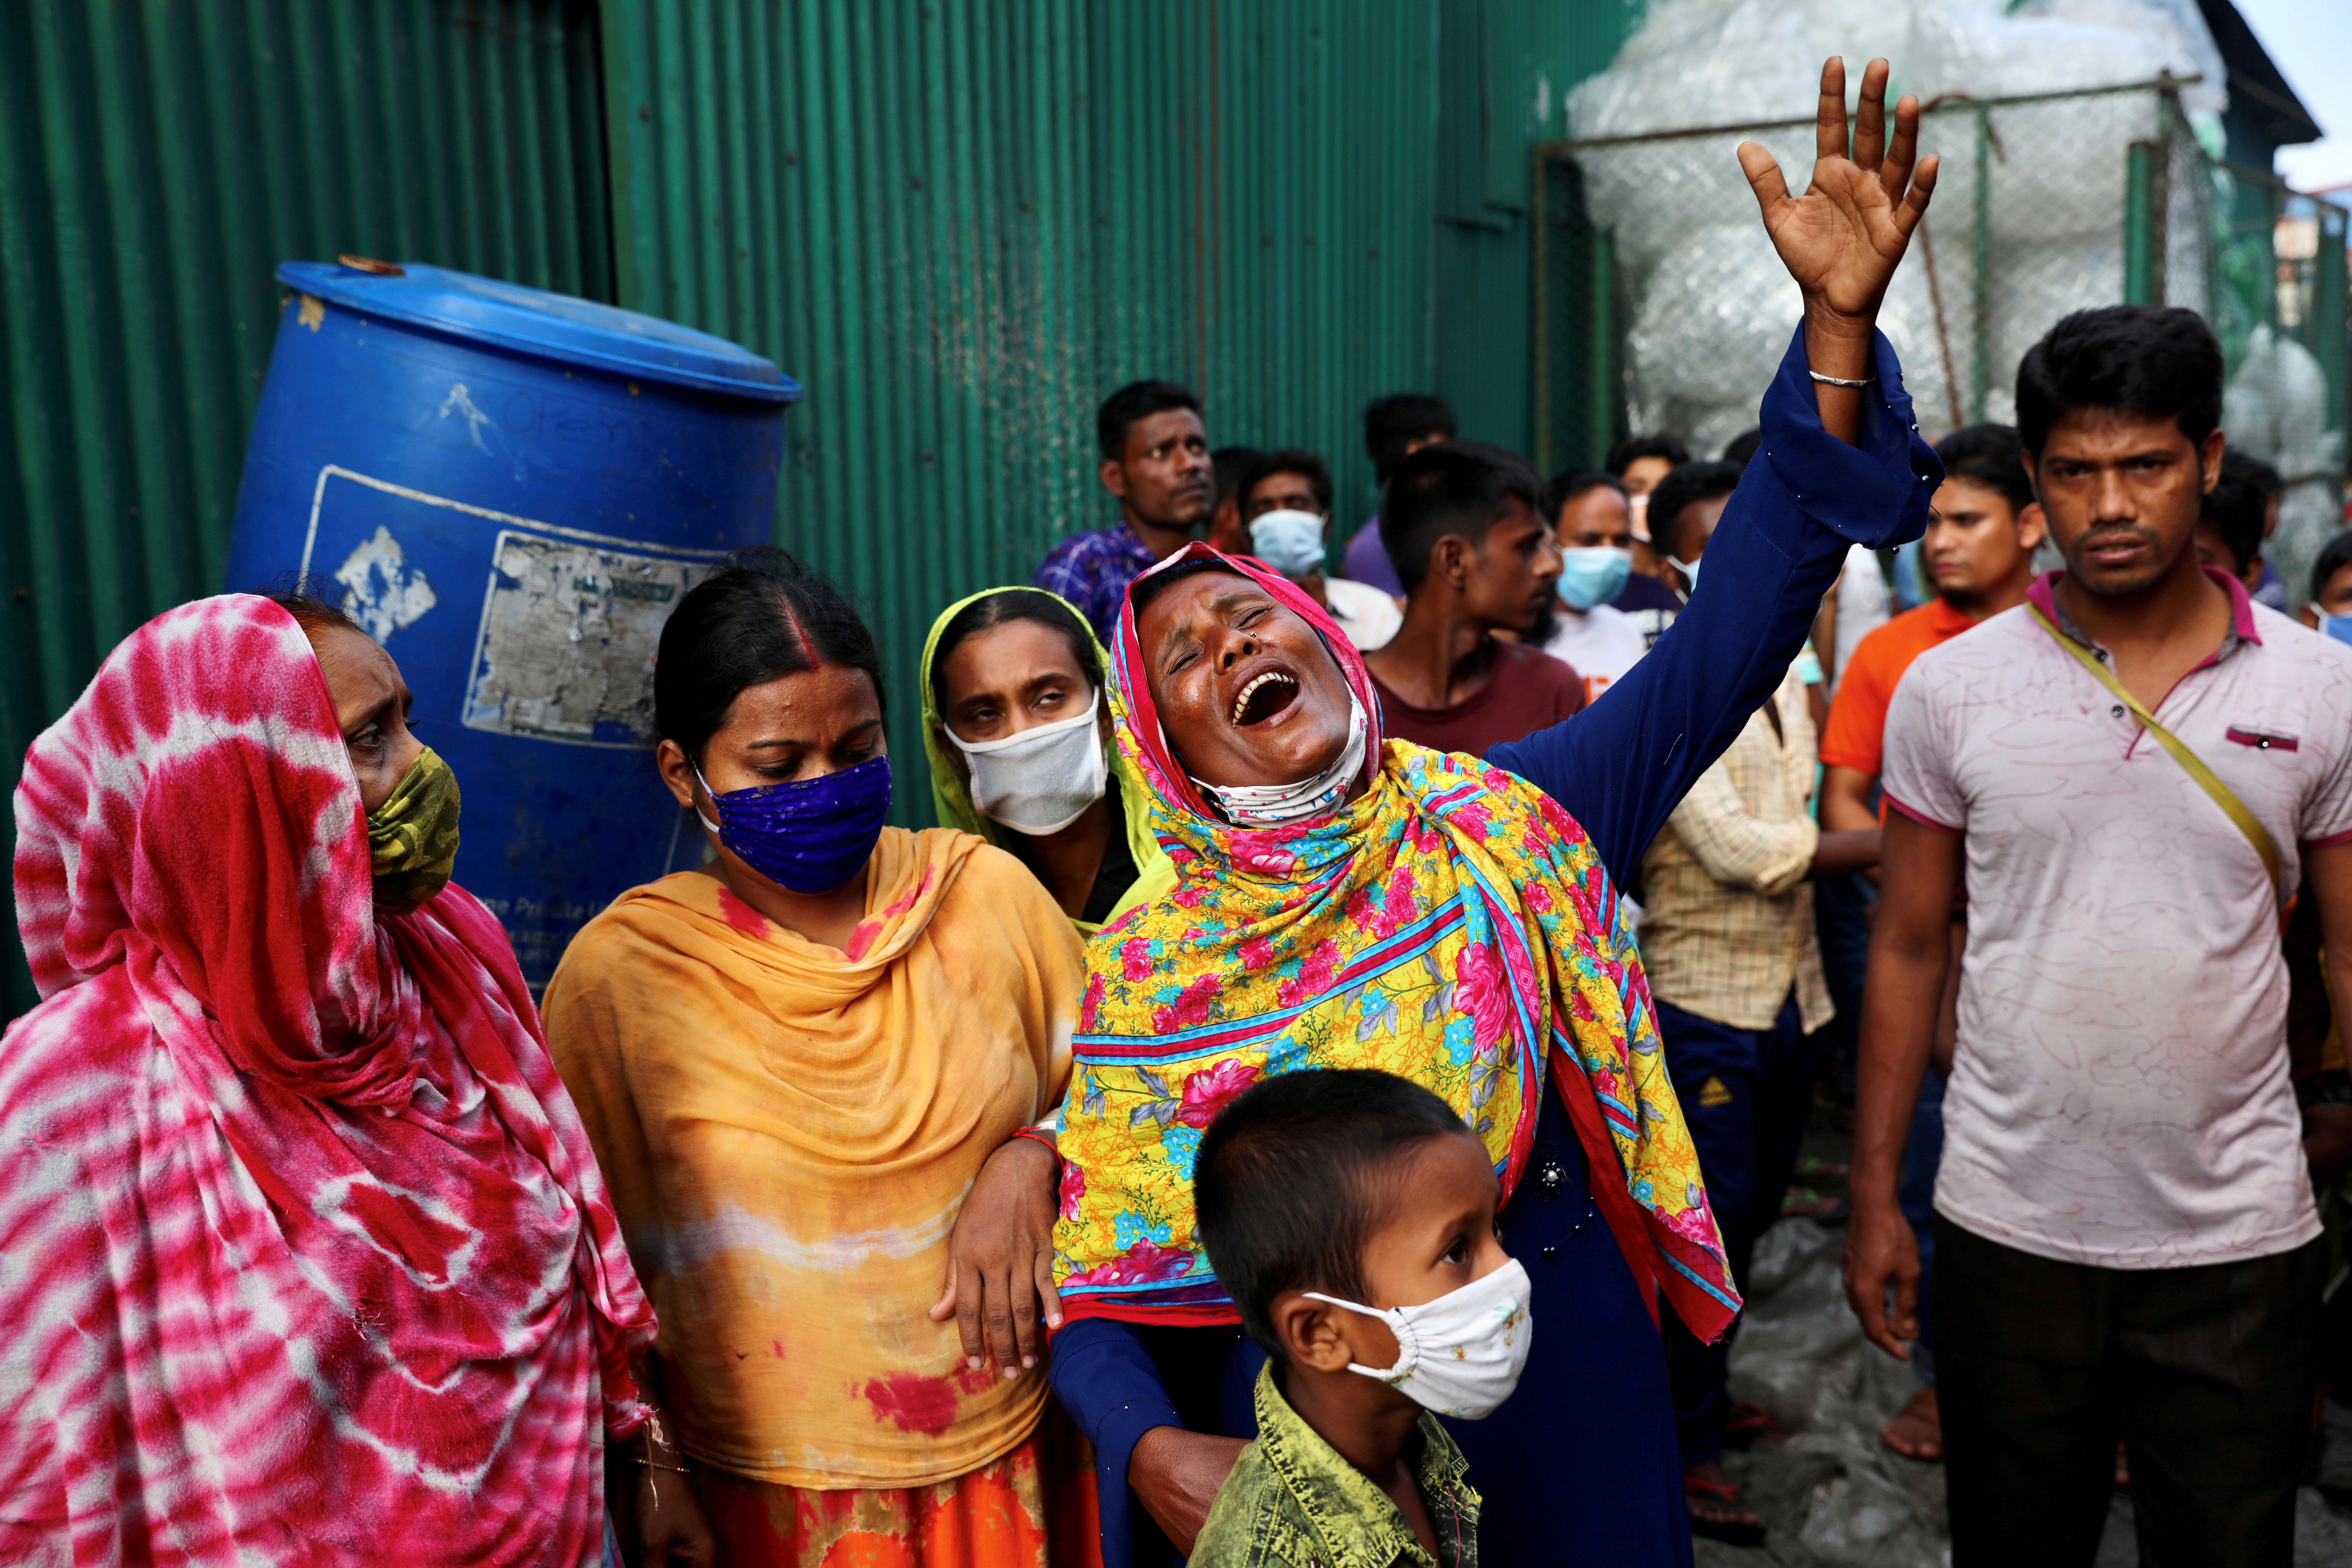 Unidentified relatives of the victims mourn at the site after a fire broke out at a factory named Hashem Foods Ltd. in Rupganj of Narayanganj district, on the outskirts of Dhaka, Bangladesh, July 9, 2021. REUTERS/Mohammad Ponir Hossain